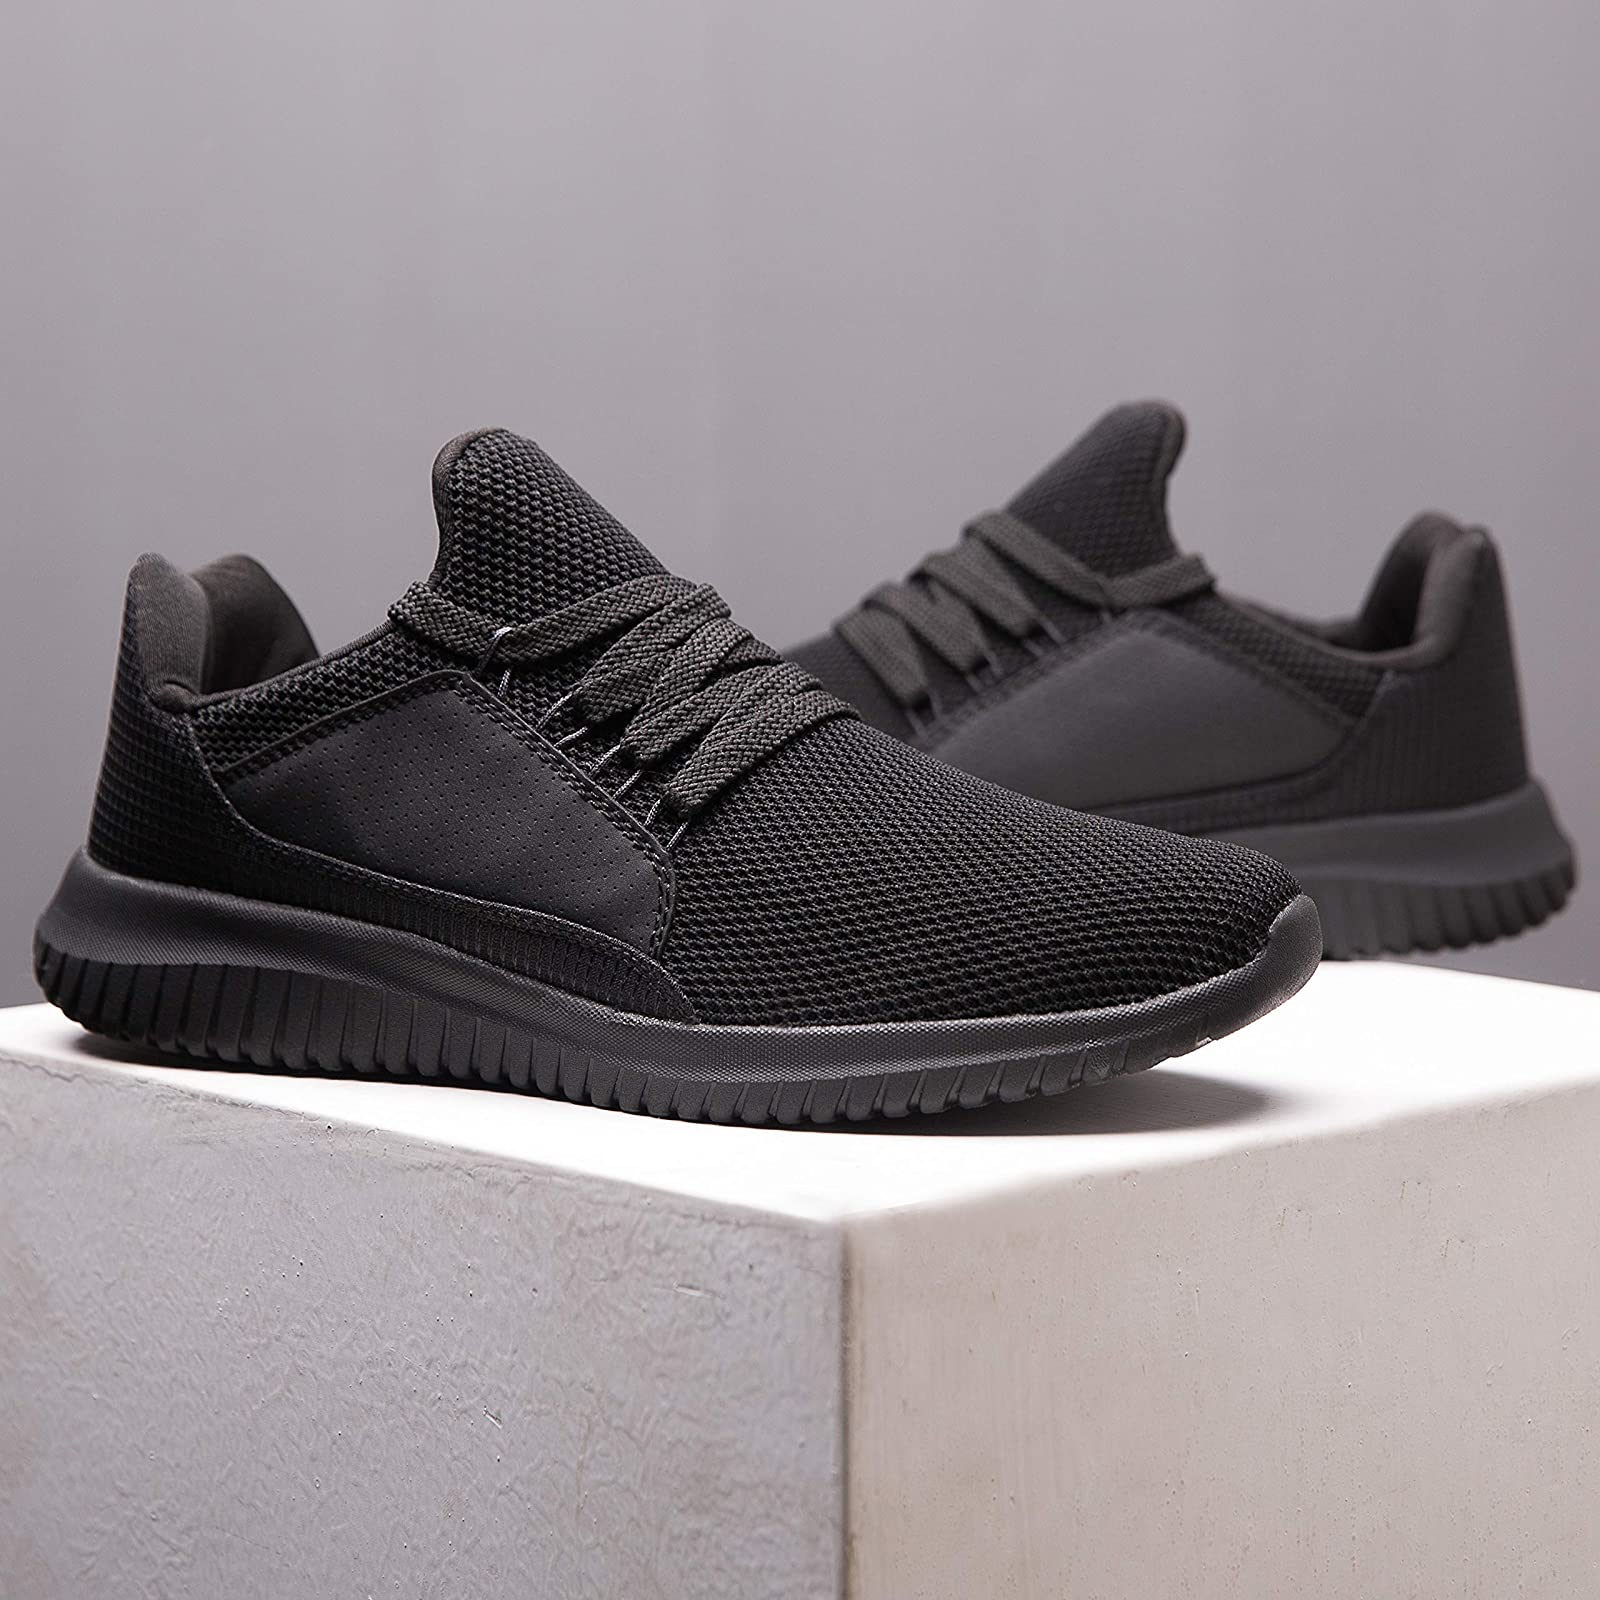 Krystory Casual Running SneakersMen and Women Breathable - 4